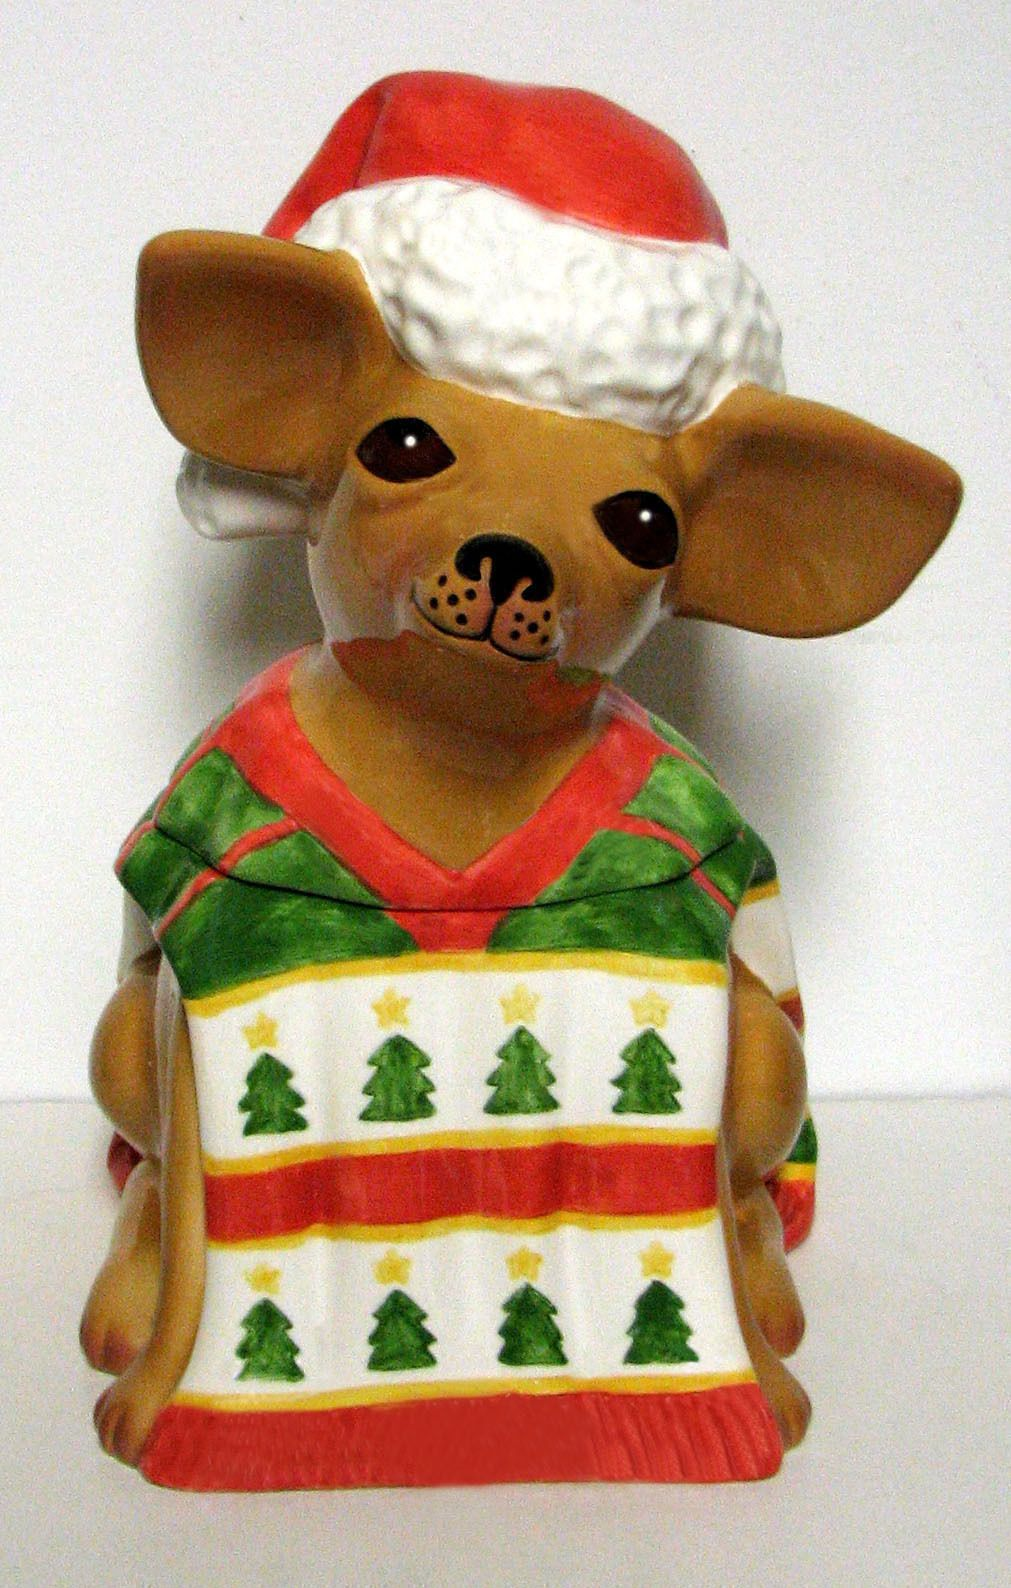 Chihuahua Cookie Jar Beauteous Rare Santa Chihuahua Clay Art Cookie Jar  Cookie Jars Jar And Santa 2018